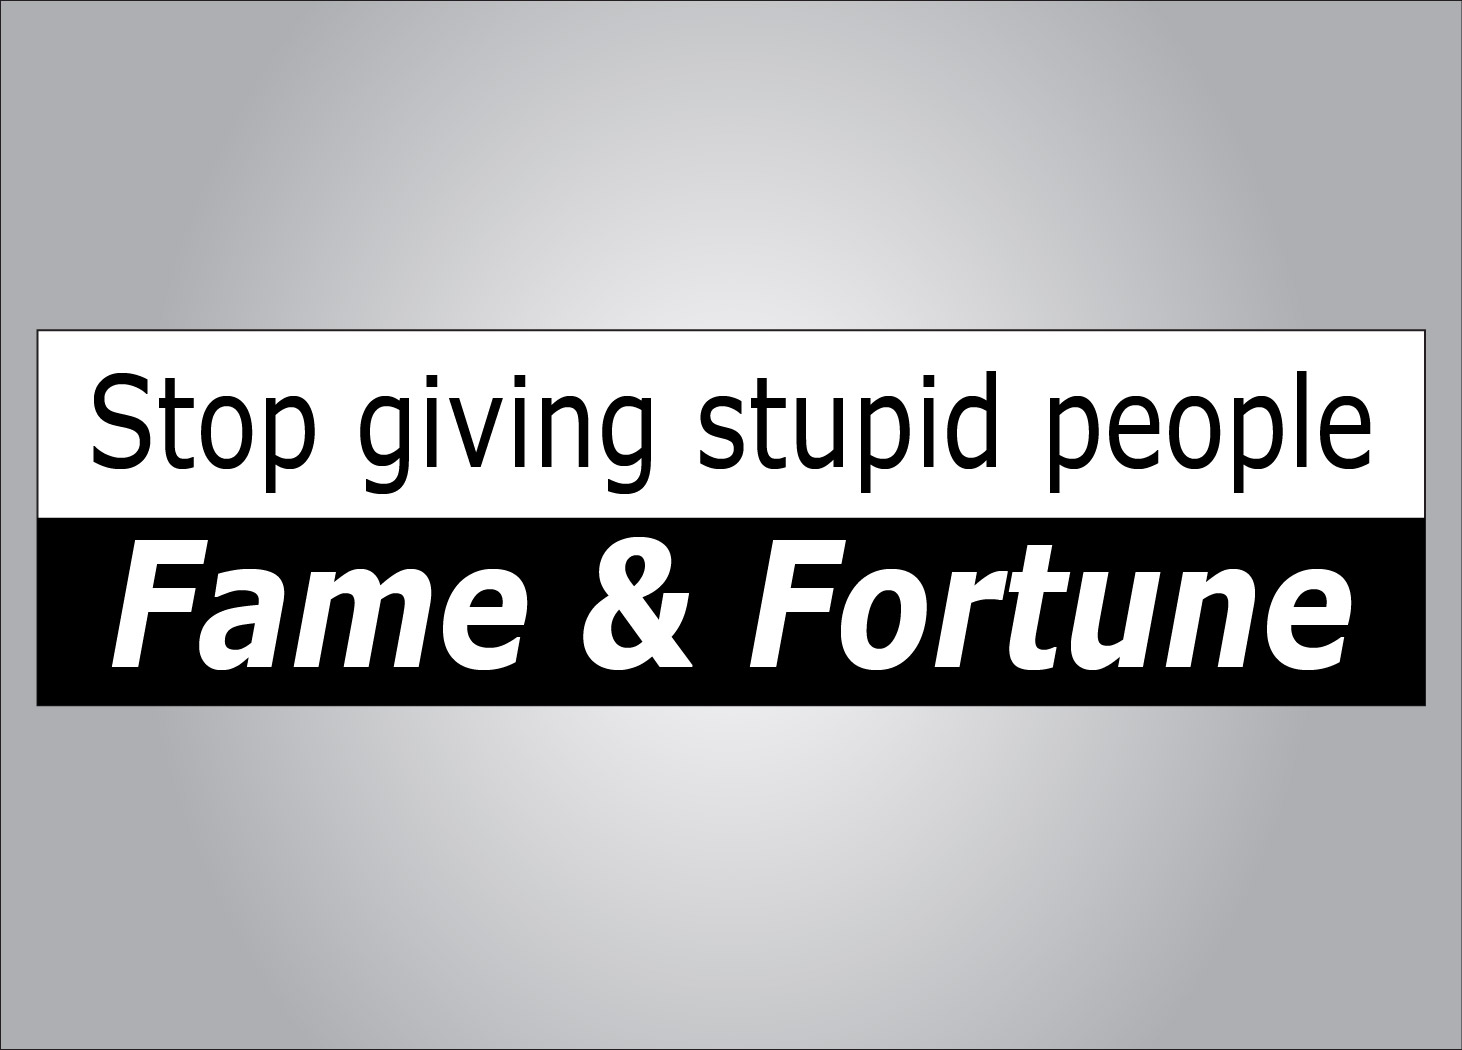 Stupid people do stupid things with their fortunes...